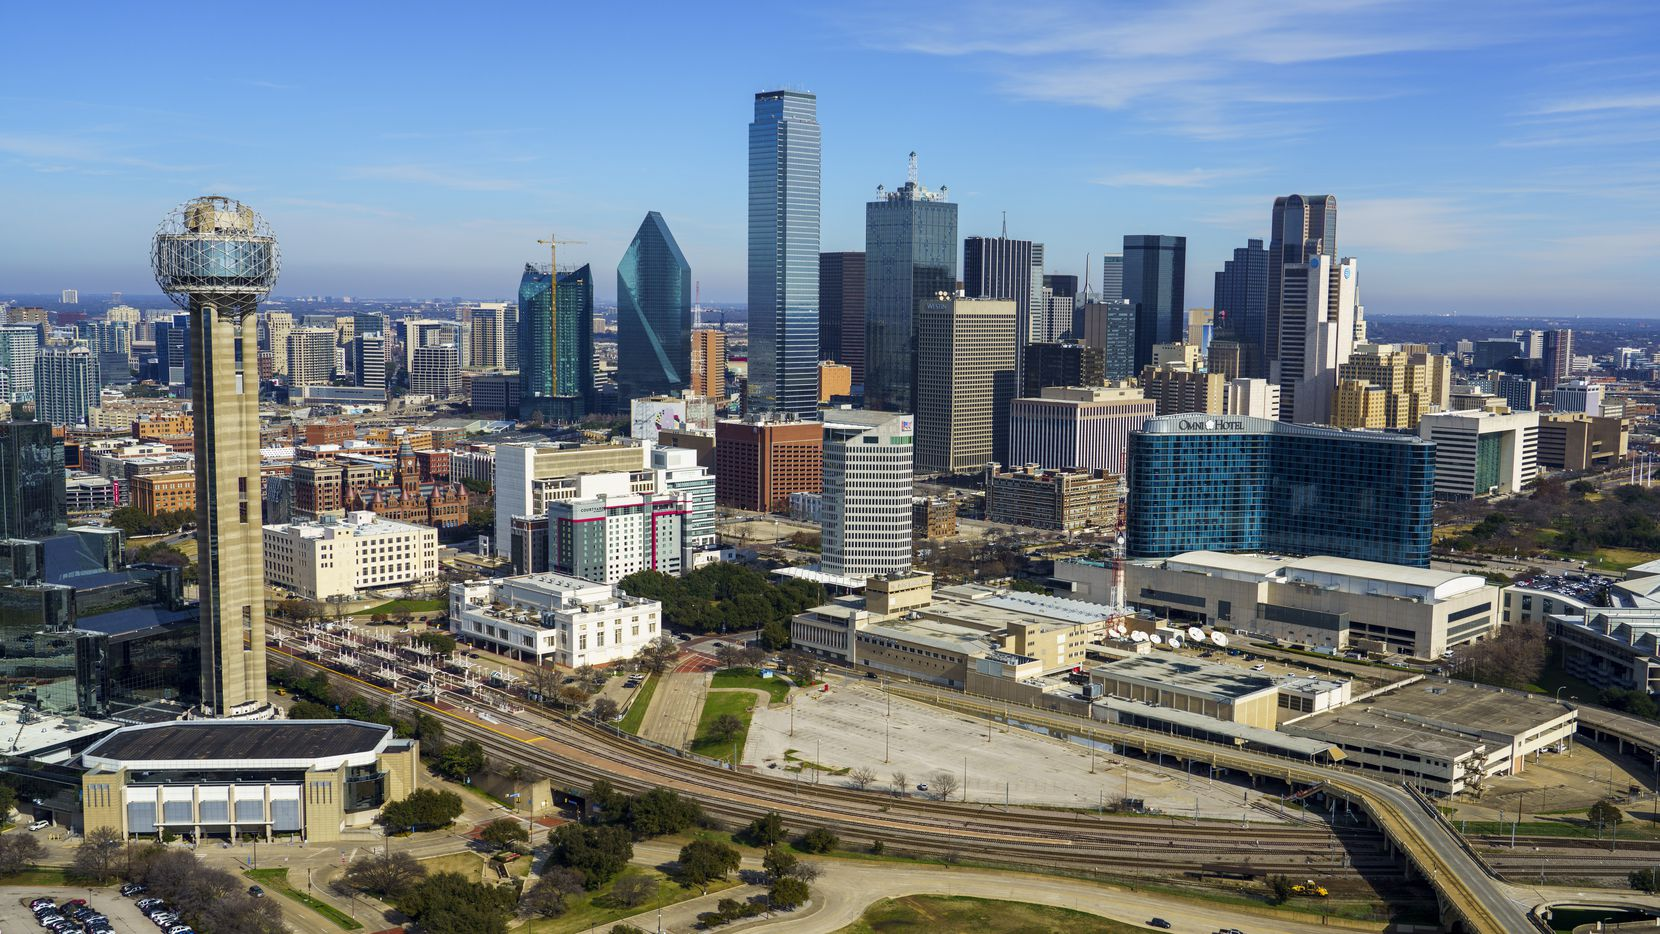 Dallas-Fort Worth accounts for 87 of the 250 Texas companies, including the top two firms in Inc.'s Texas ranking.